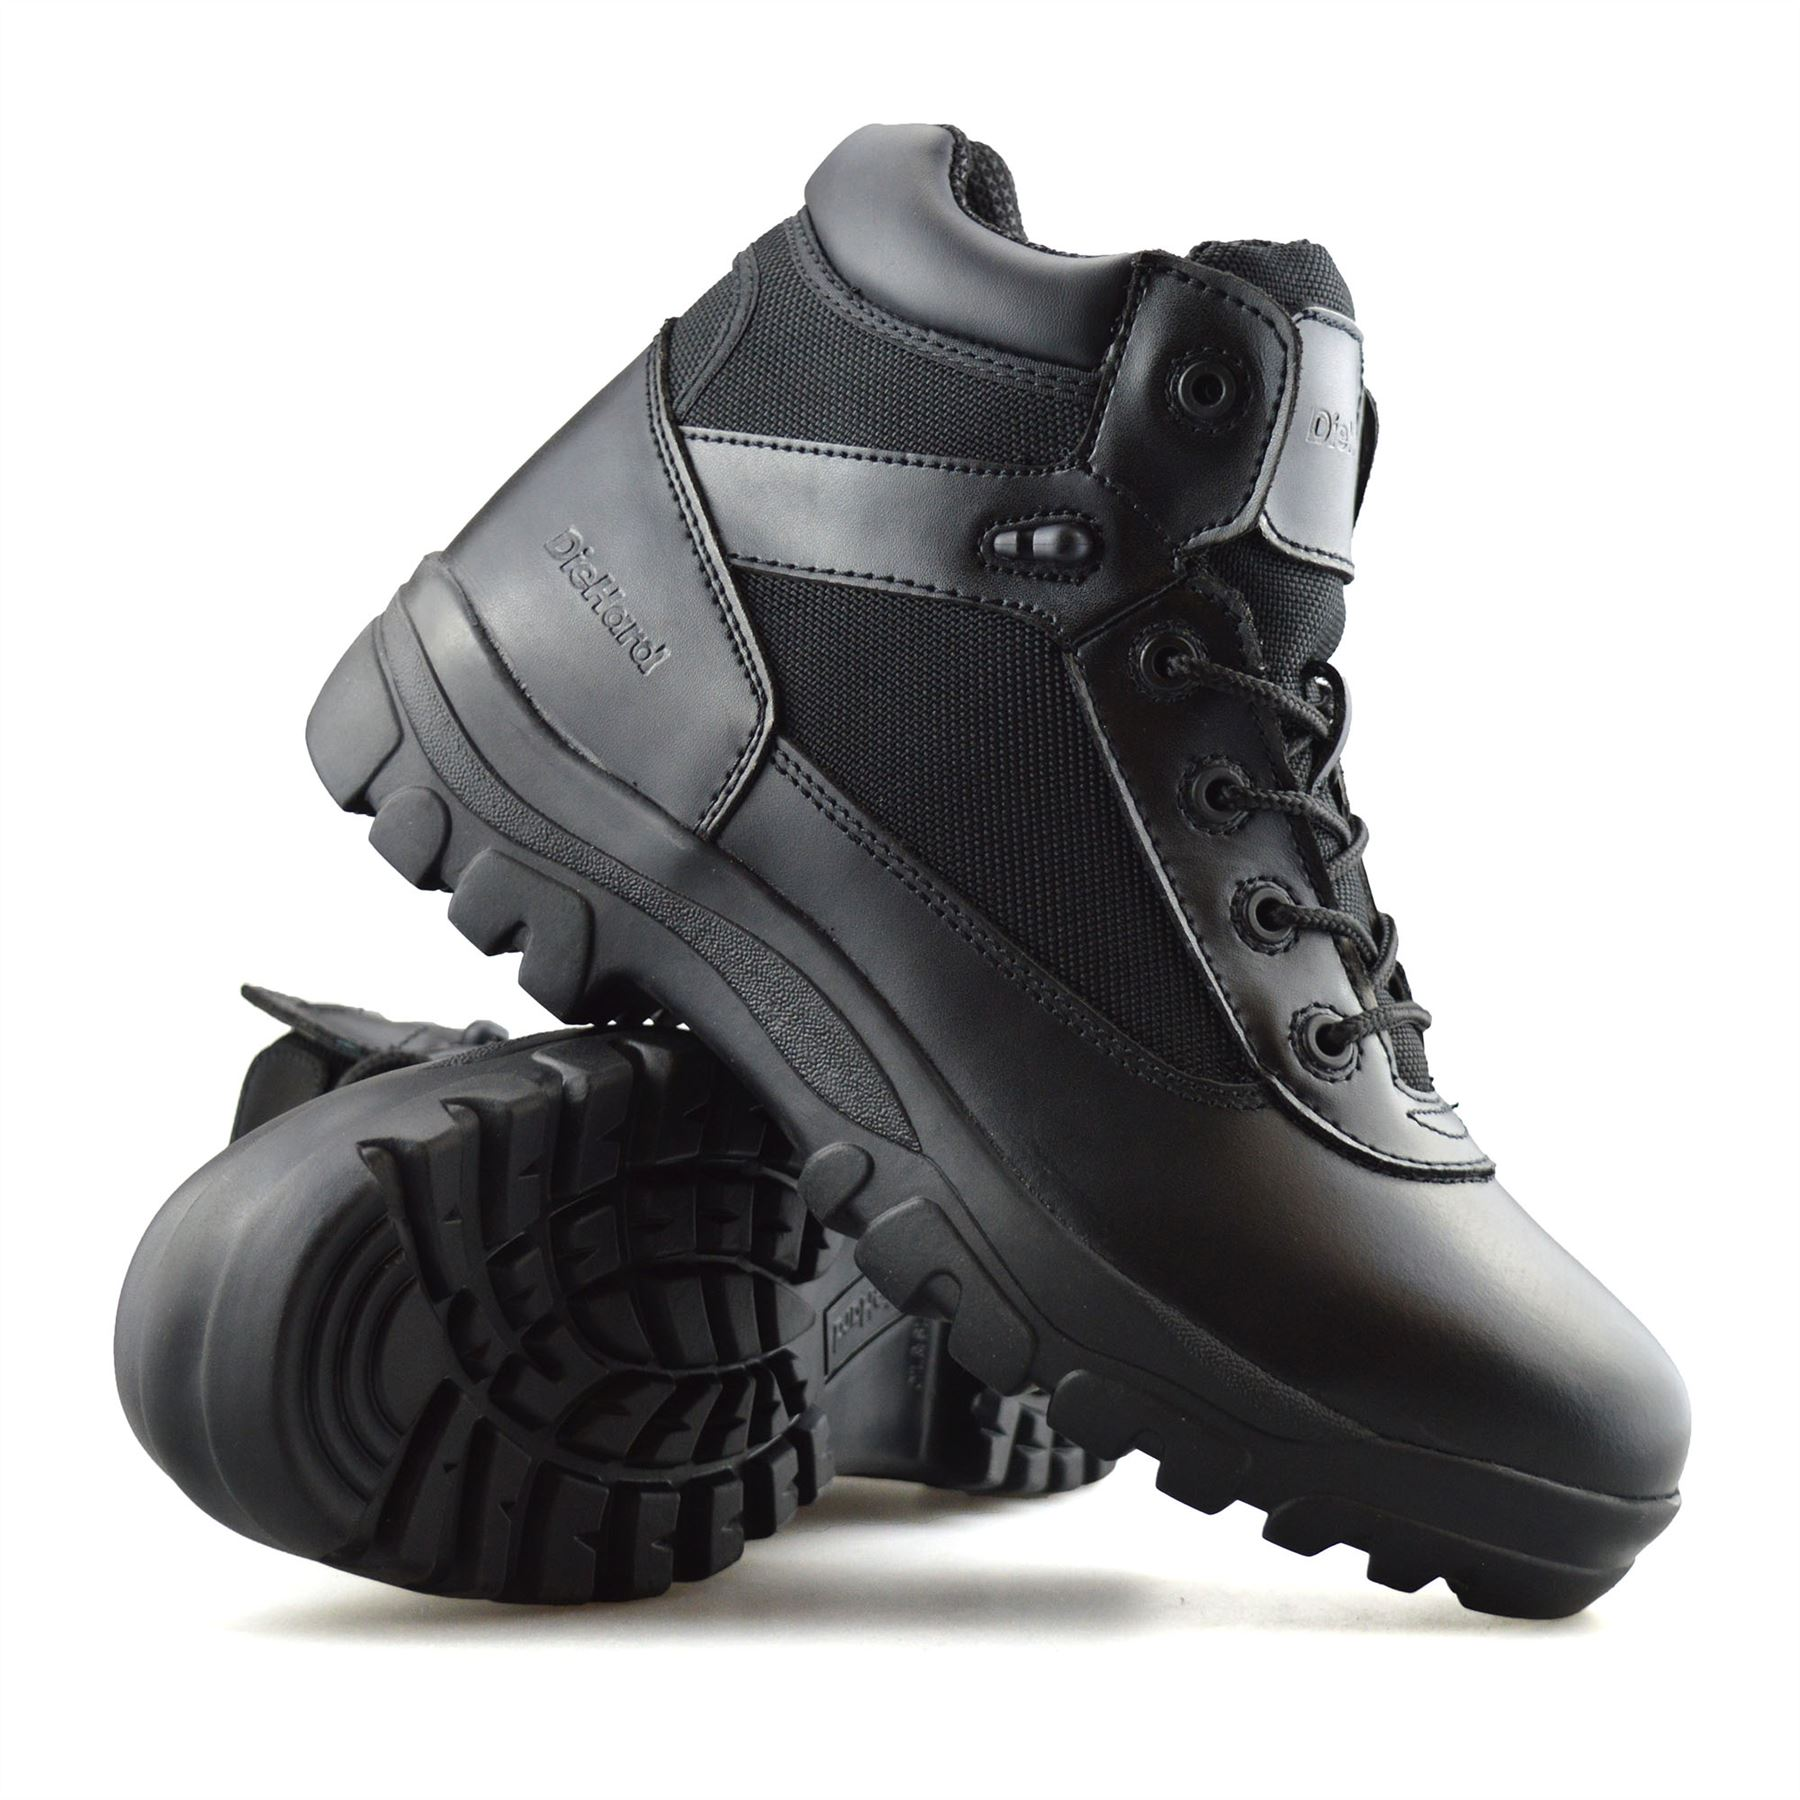 Mens-New-Leather-Military-Army-Combat-Walking-Hiking-Work-Ankle-Boots-Shoes-Size thumbnail 16